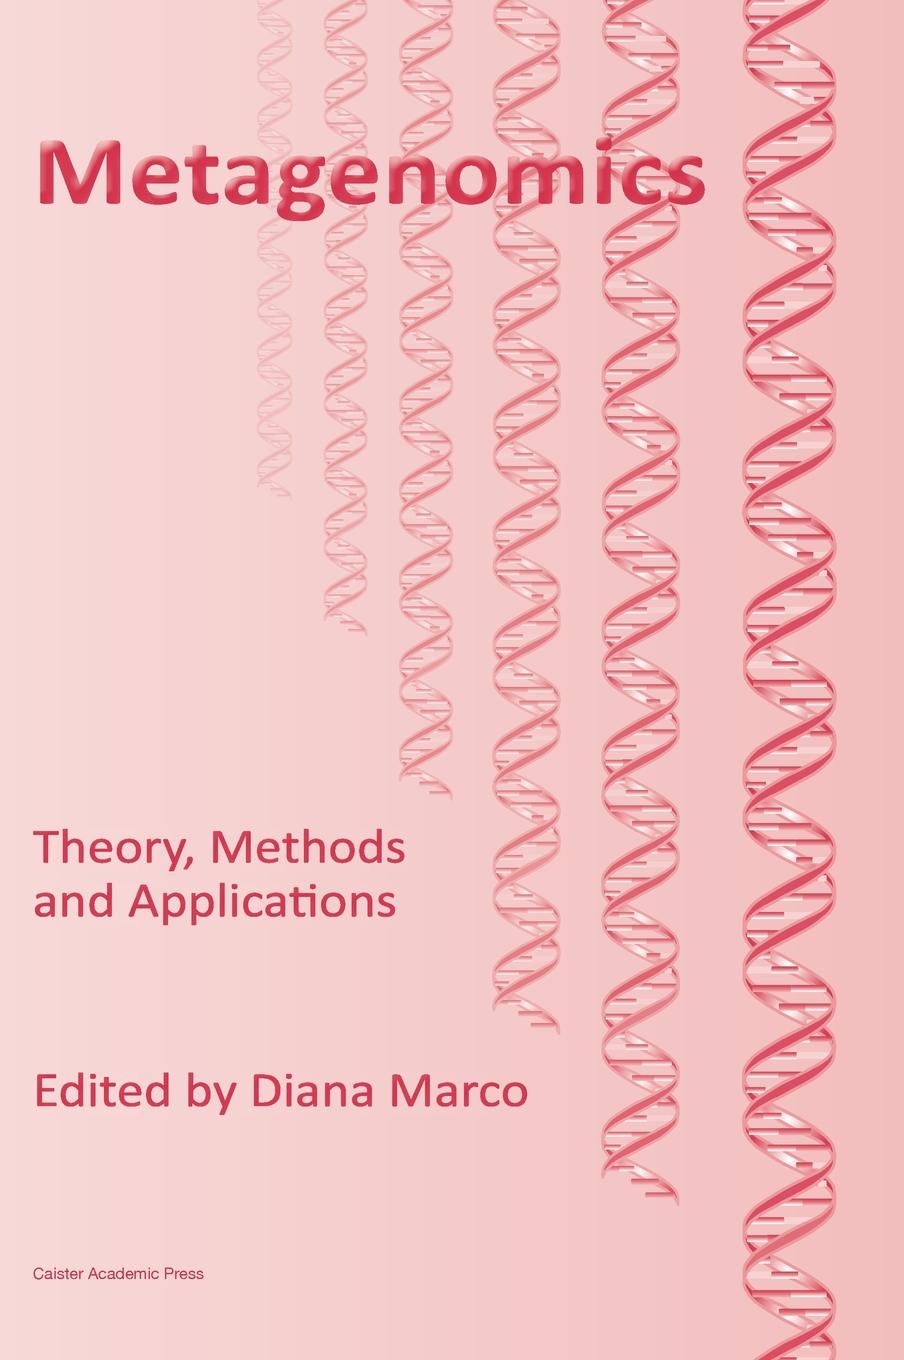 Metagenomics: Theory, Methods and Applications